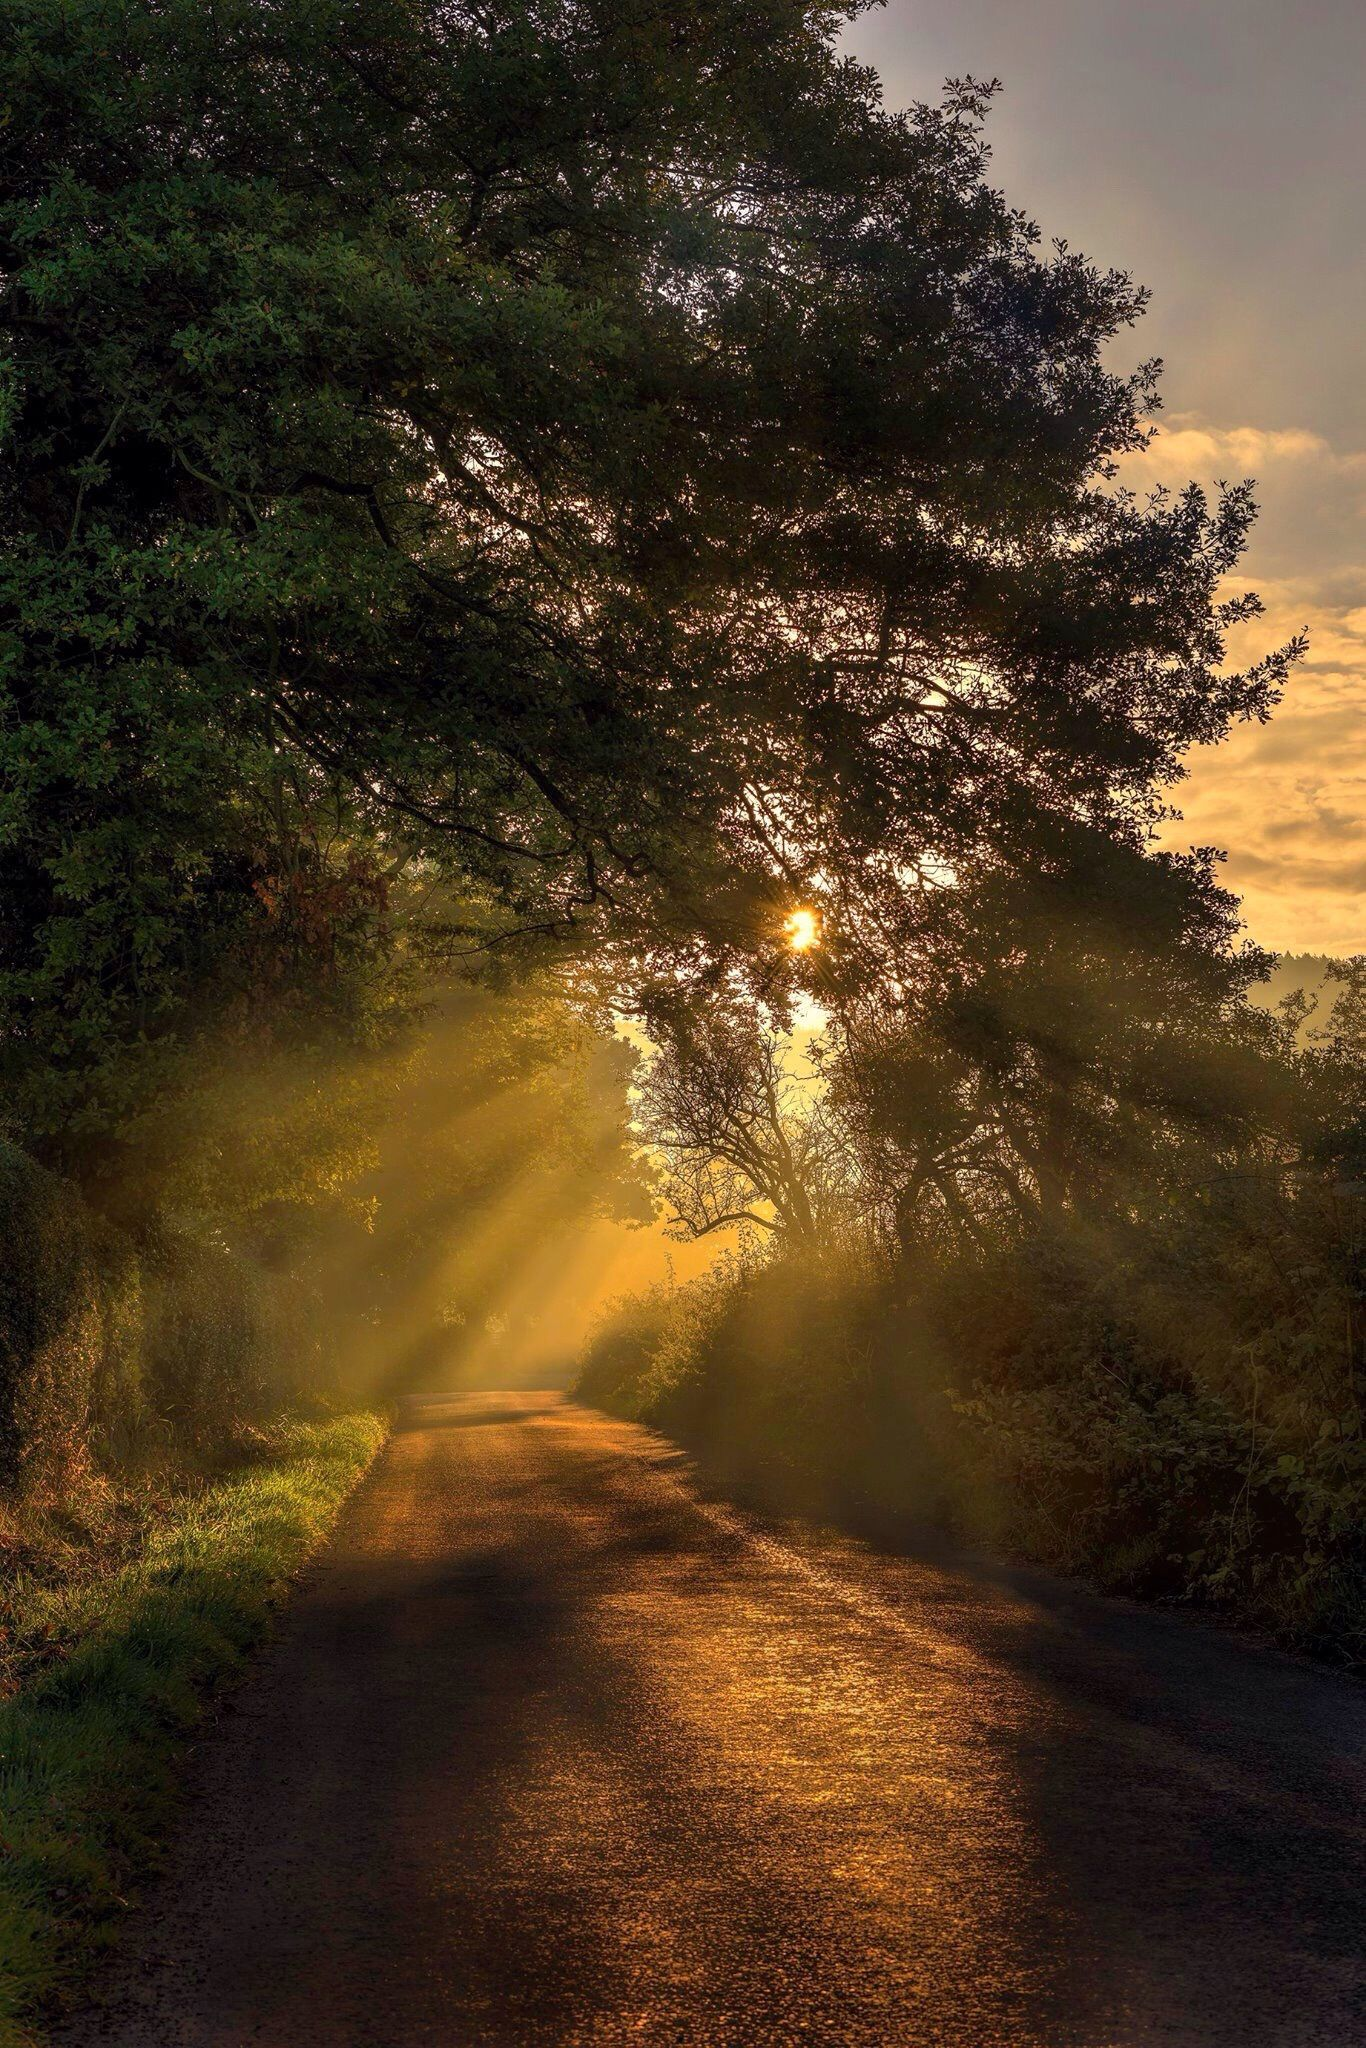 Take A Walk Into Natures Spotlight A Misty Dawn On An Autumn Road By Christopher Heapy Nature Photography Beautiful Nature Nature